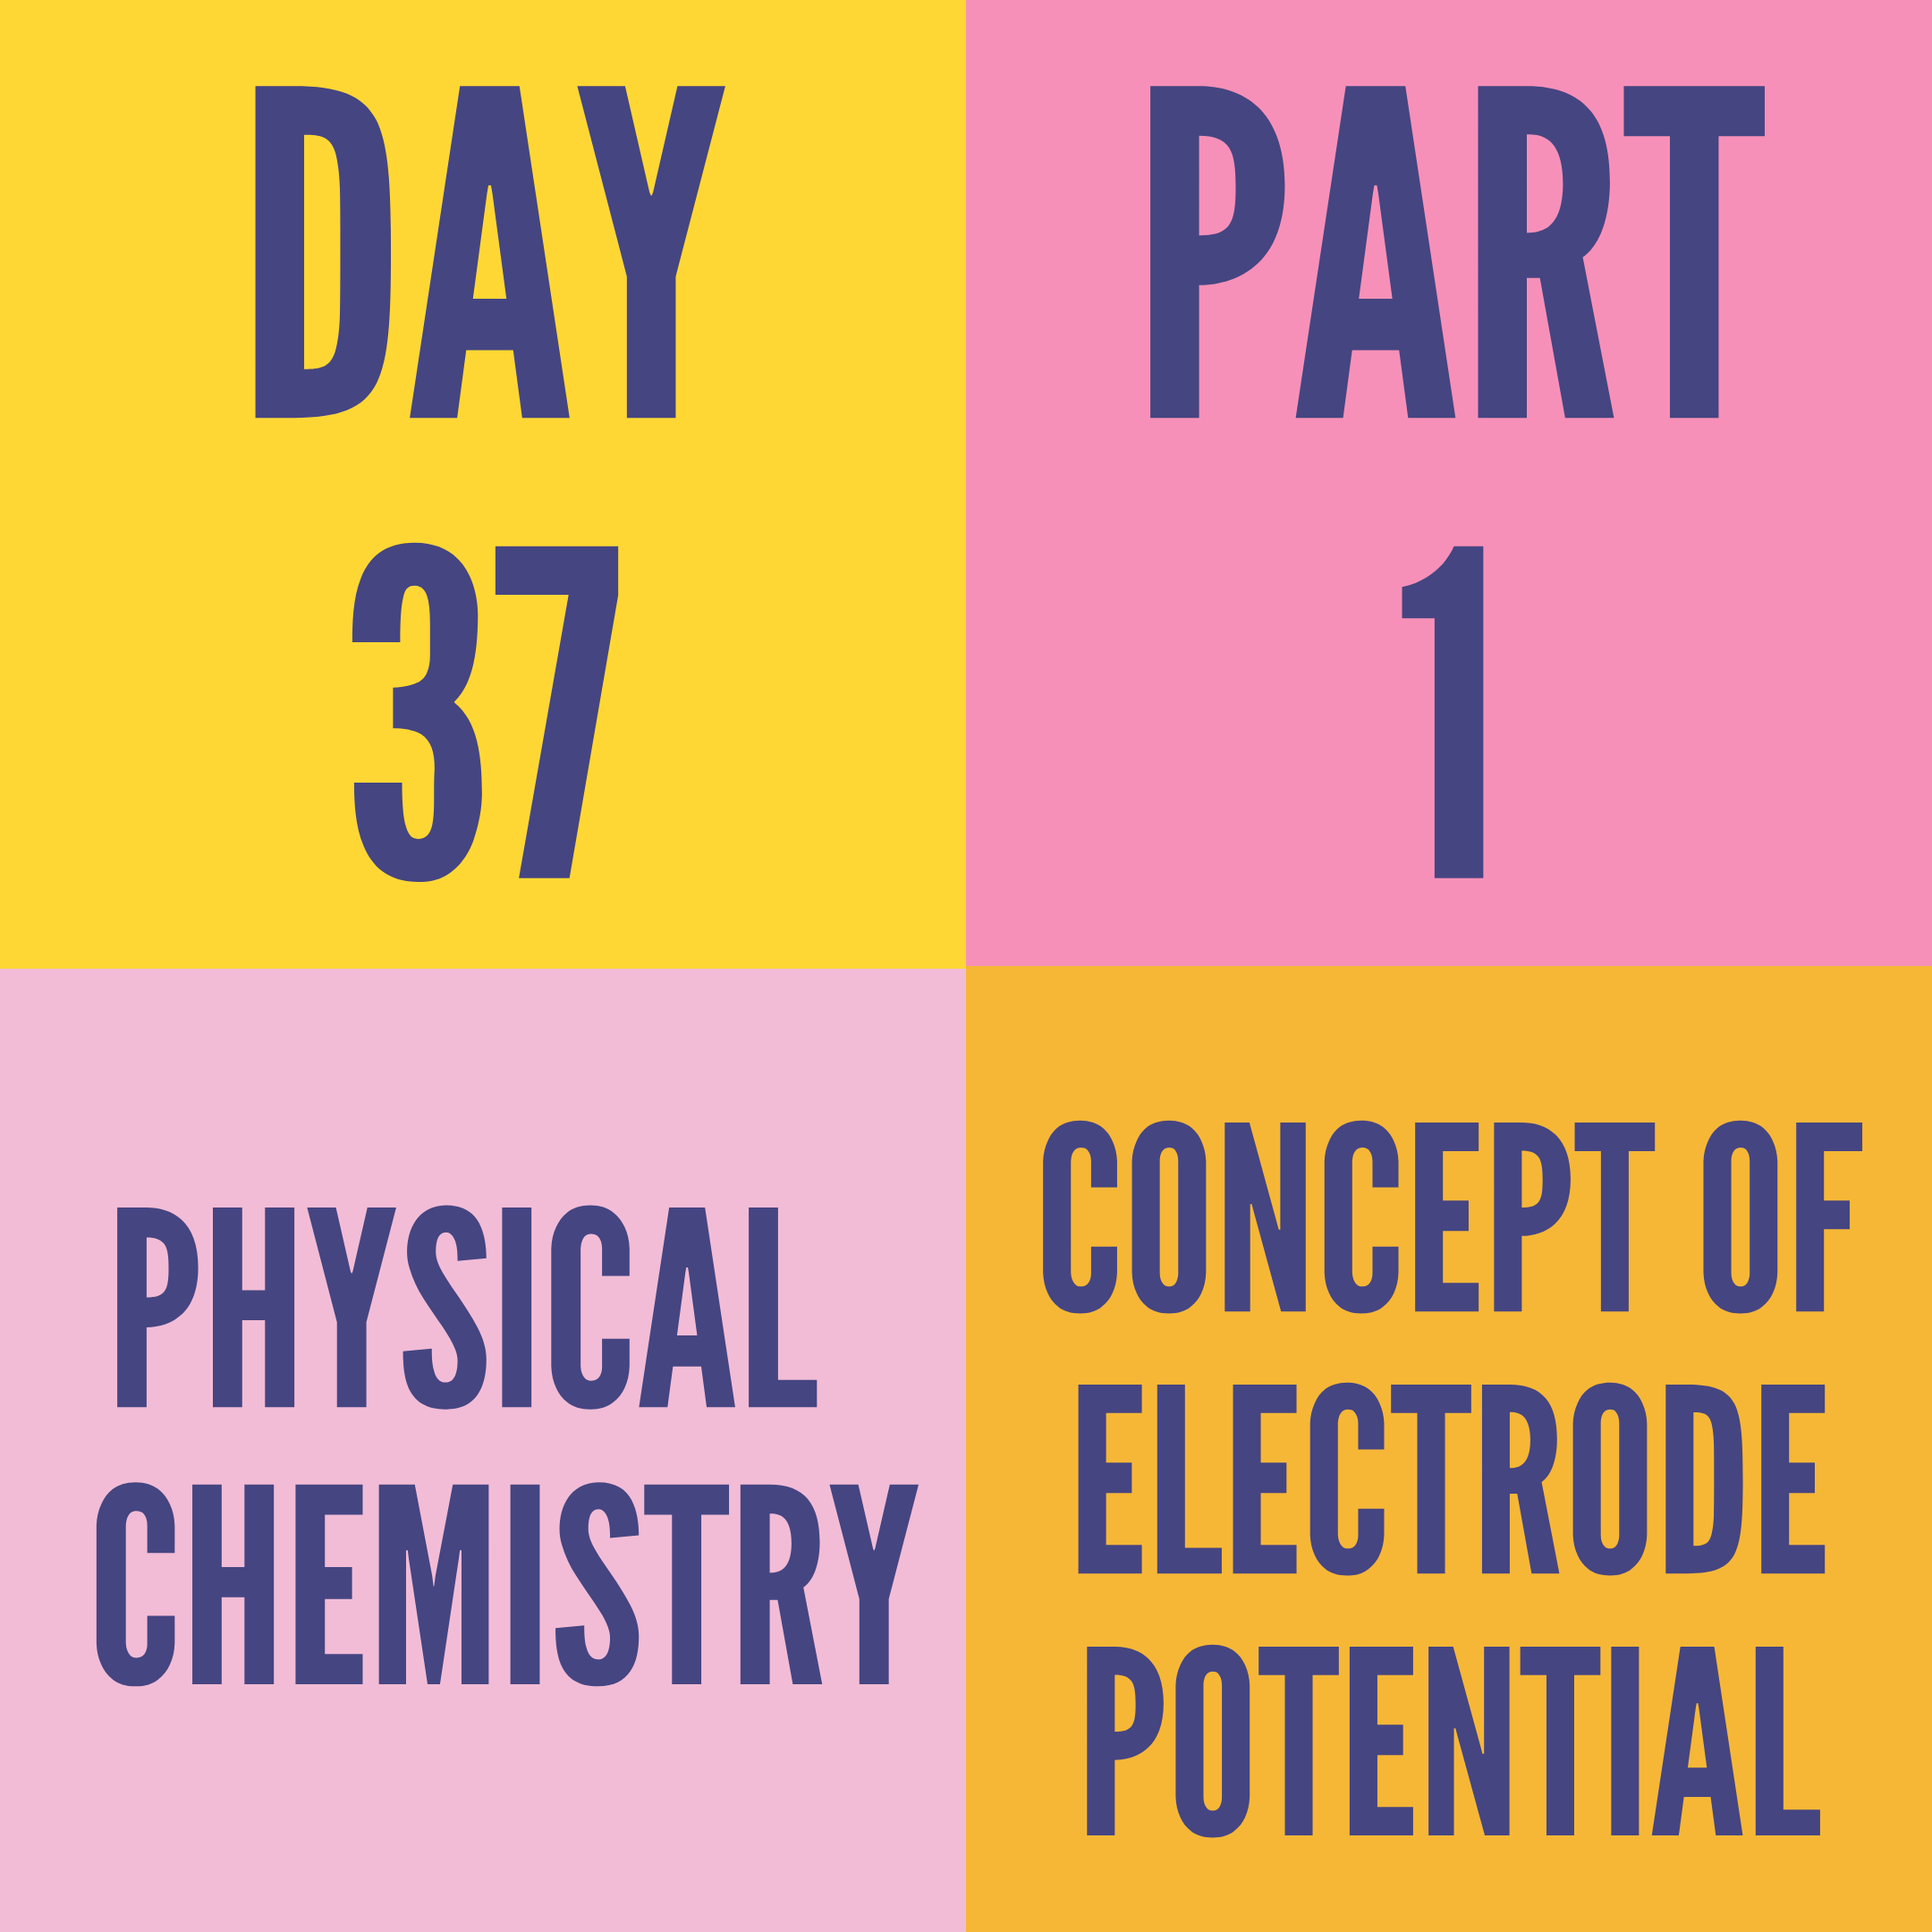 DAY-37 PART-1 CONCEPT OF ELECTRODE POTENTIAL